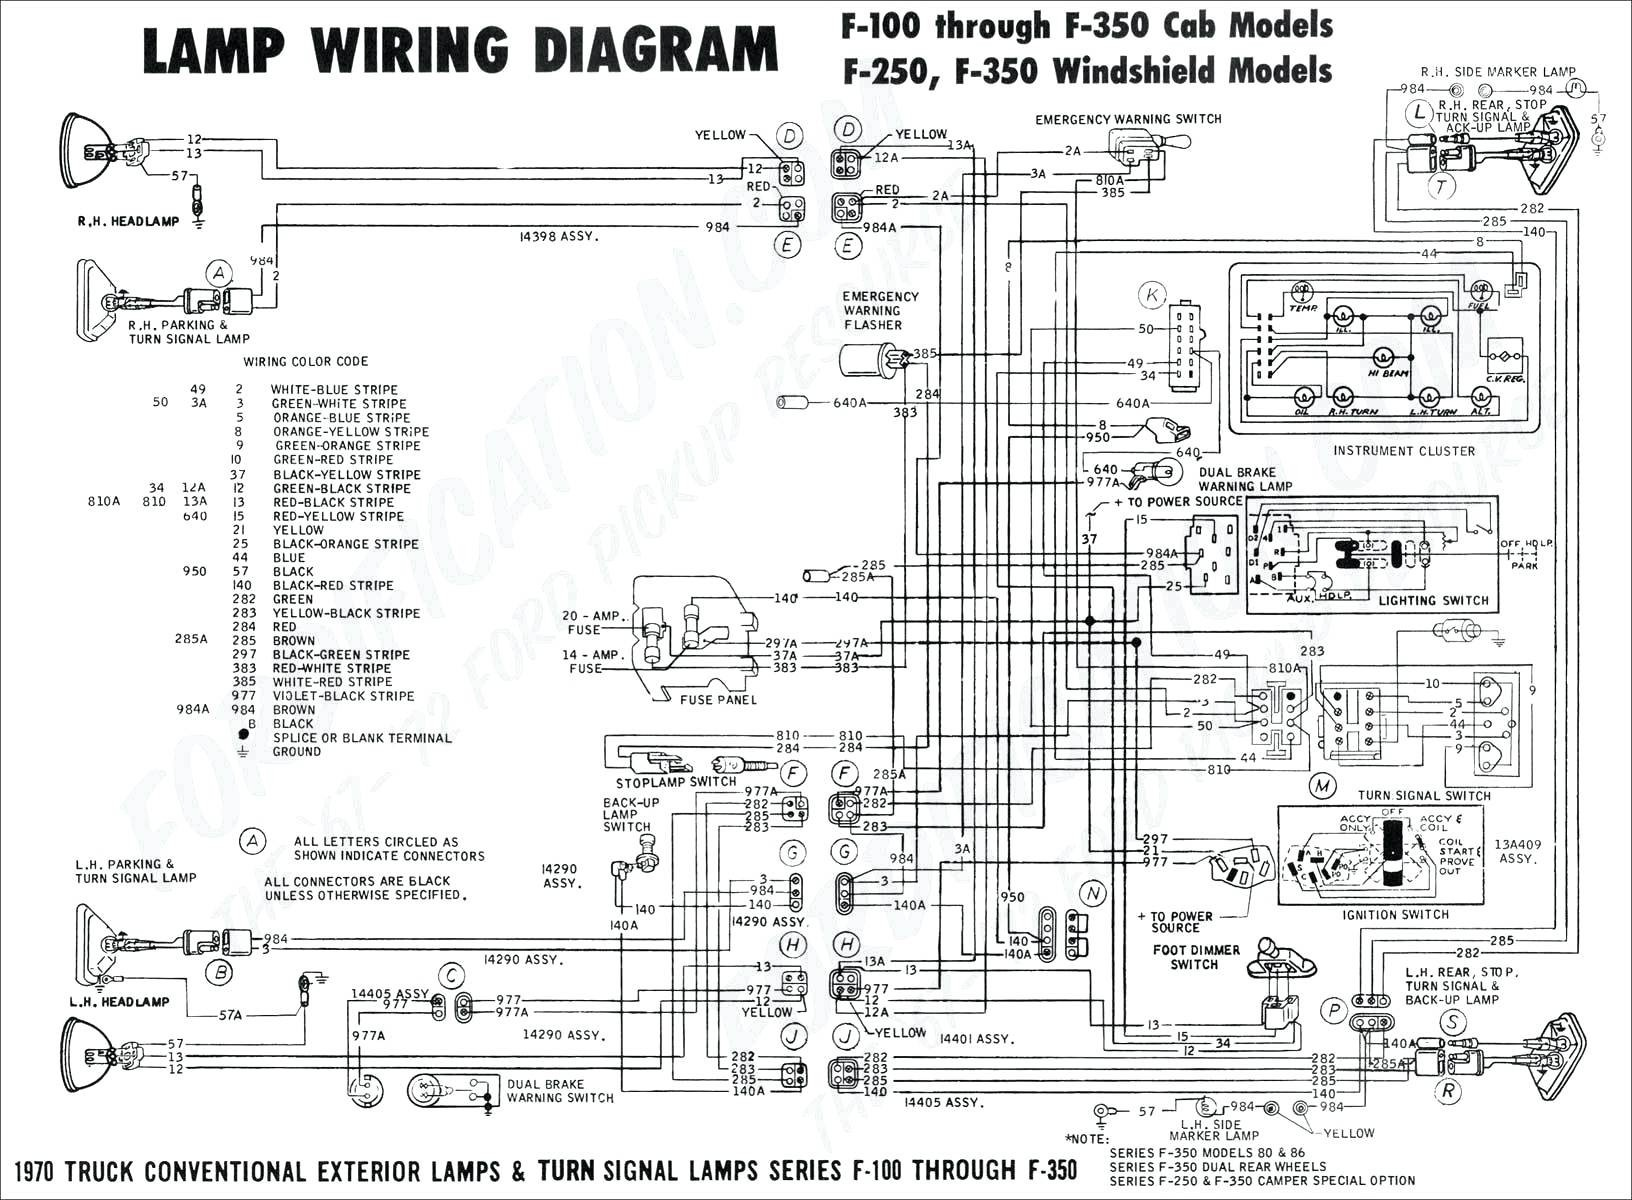 daewoo wiring diagram - 3 way rotary switch wiring diagram for wiring  diagram schematics  wiring diagram schematics